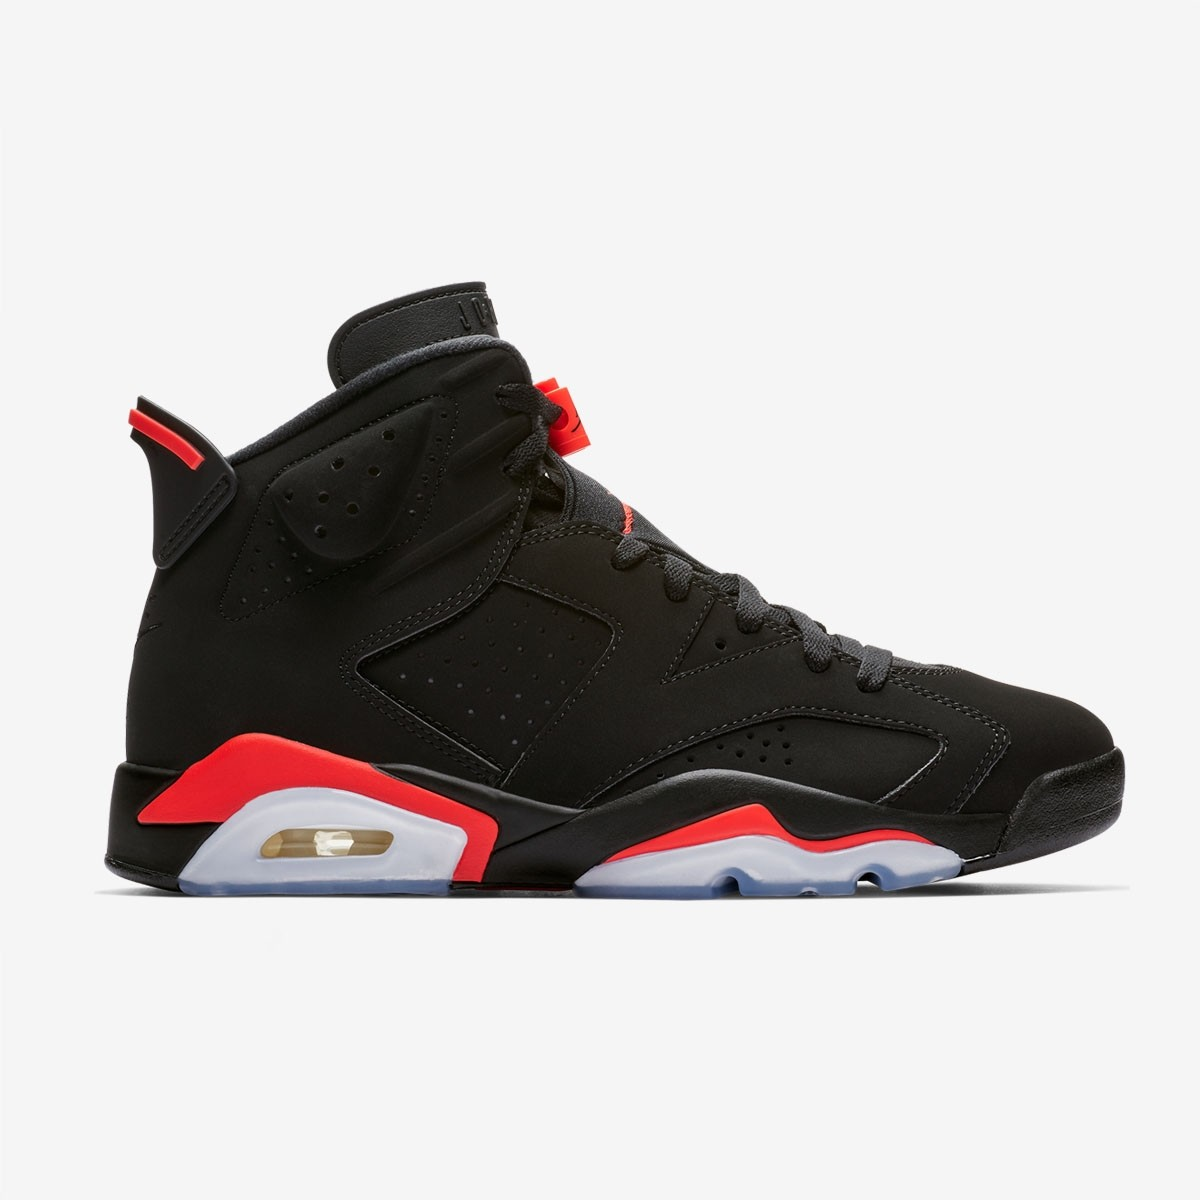 Air Jordan 6 Retro OG 'Infrared'